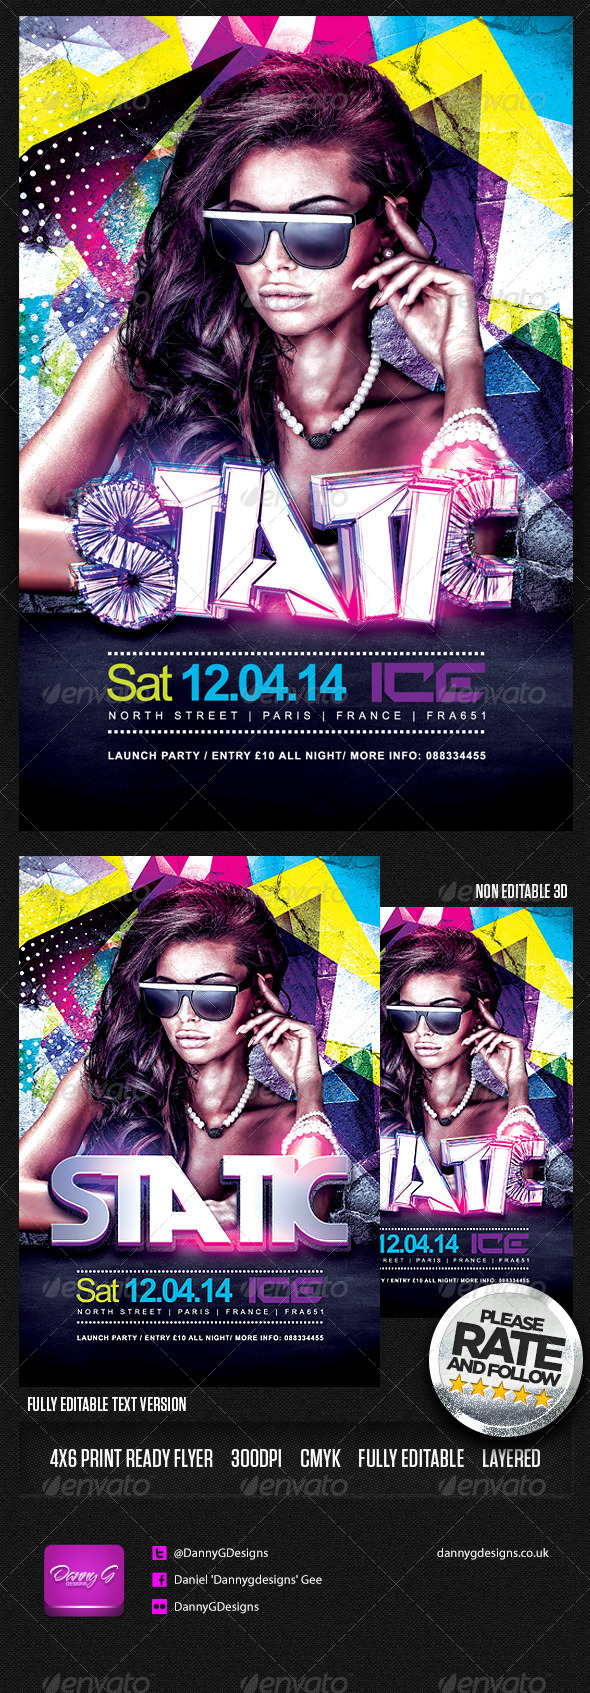 Static Flyer Template PSD - Clubs & Parties Events